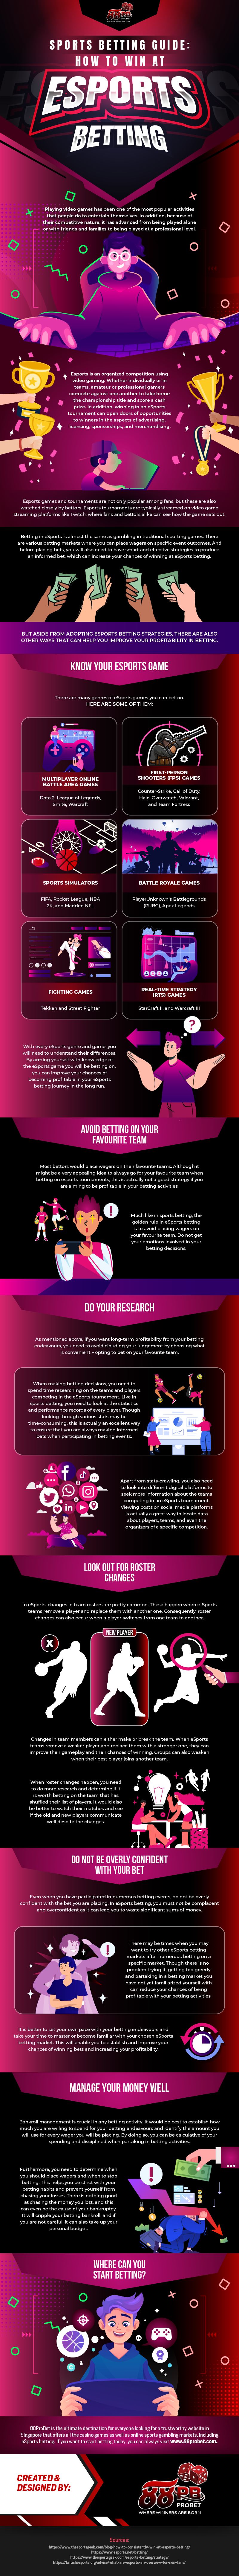 Sports-Betting-Guide_How-to-Win-at-Esports-Betting-Infographic